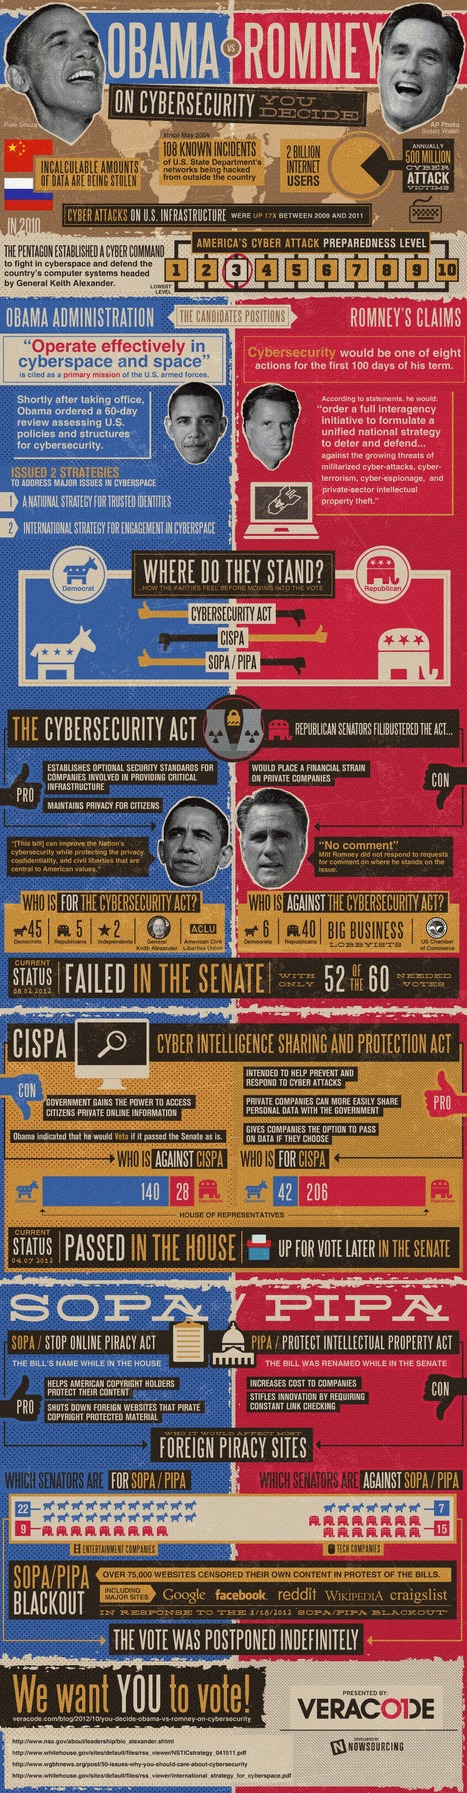 Obama vs Romney on Cybersecurity [Infographic] | coca cola | Scoop.it